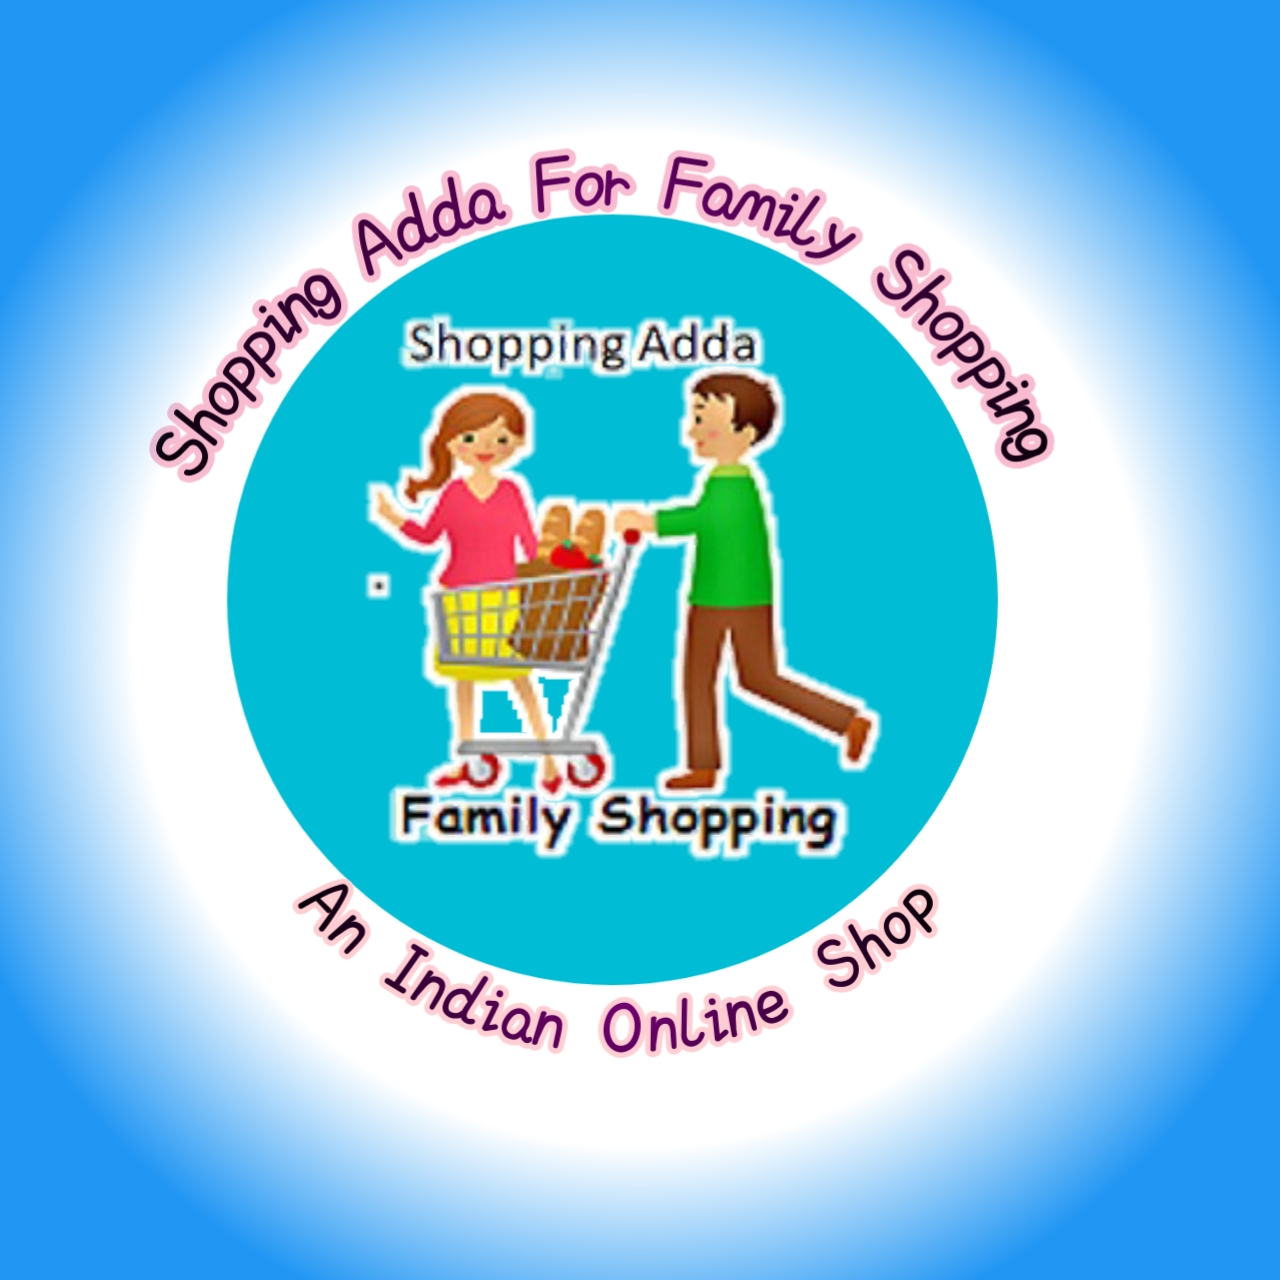 Shopping adda